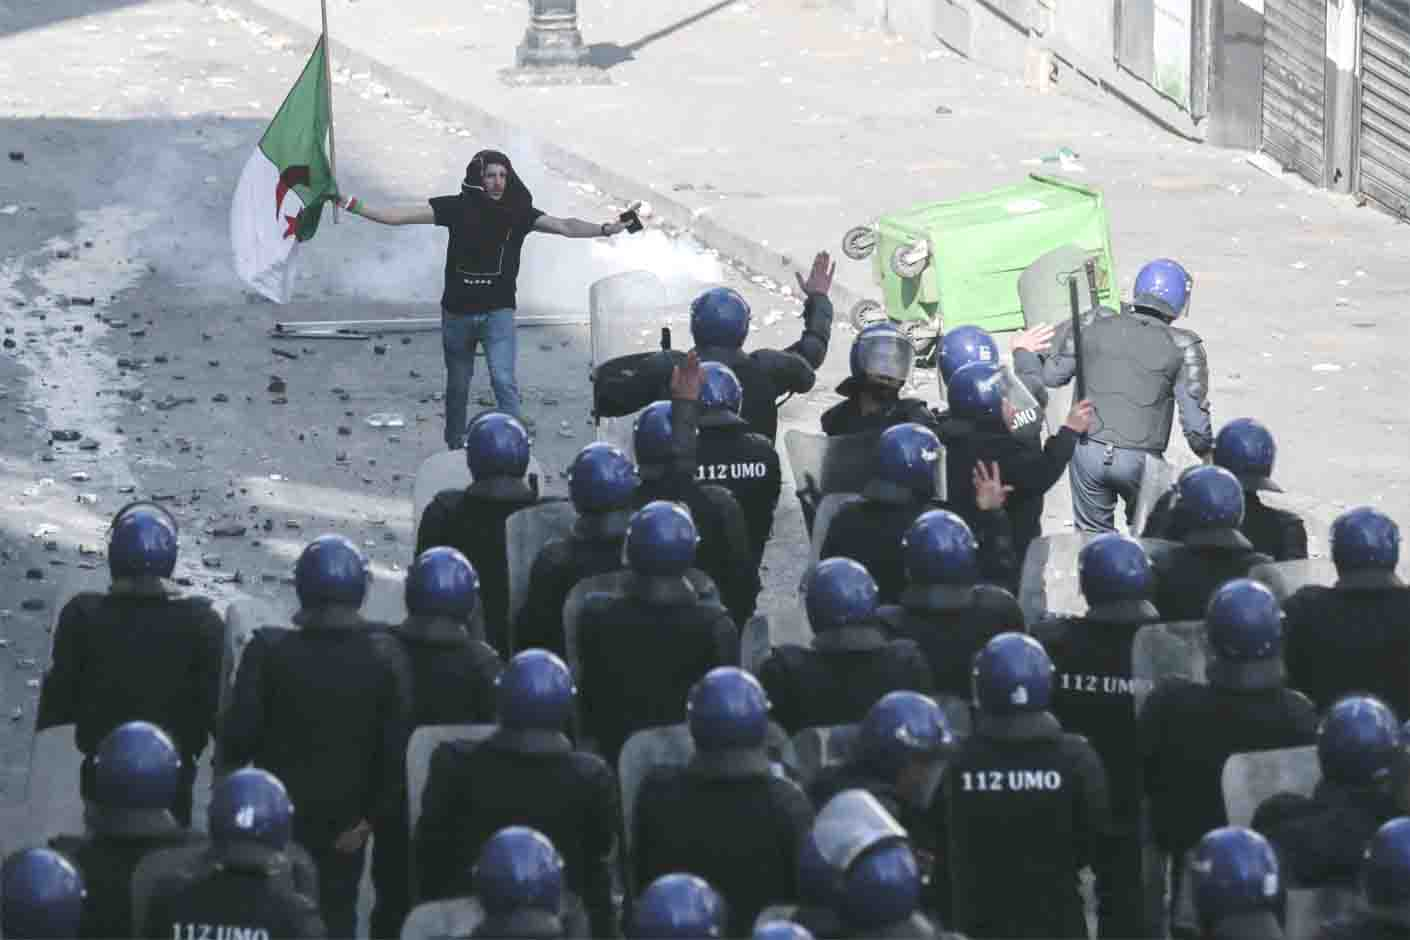 Patience running thin. A protester gestures to police officers during clashes at a demonstration against the country's leadership in Algiers, April 12. (AP)